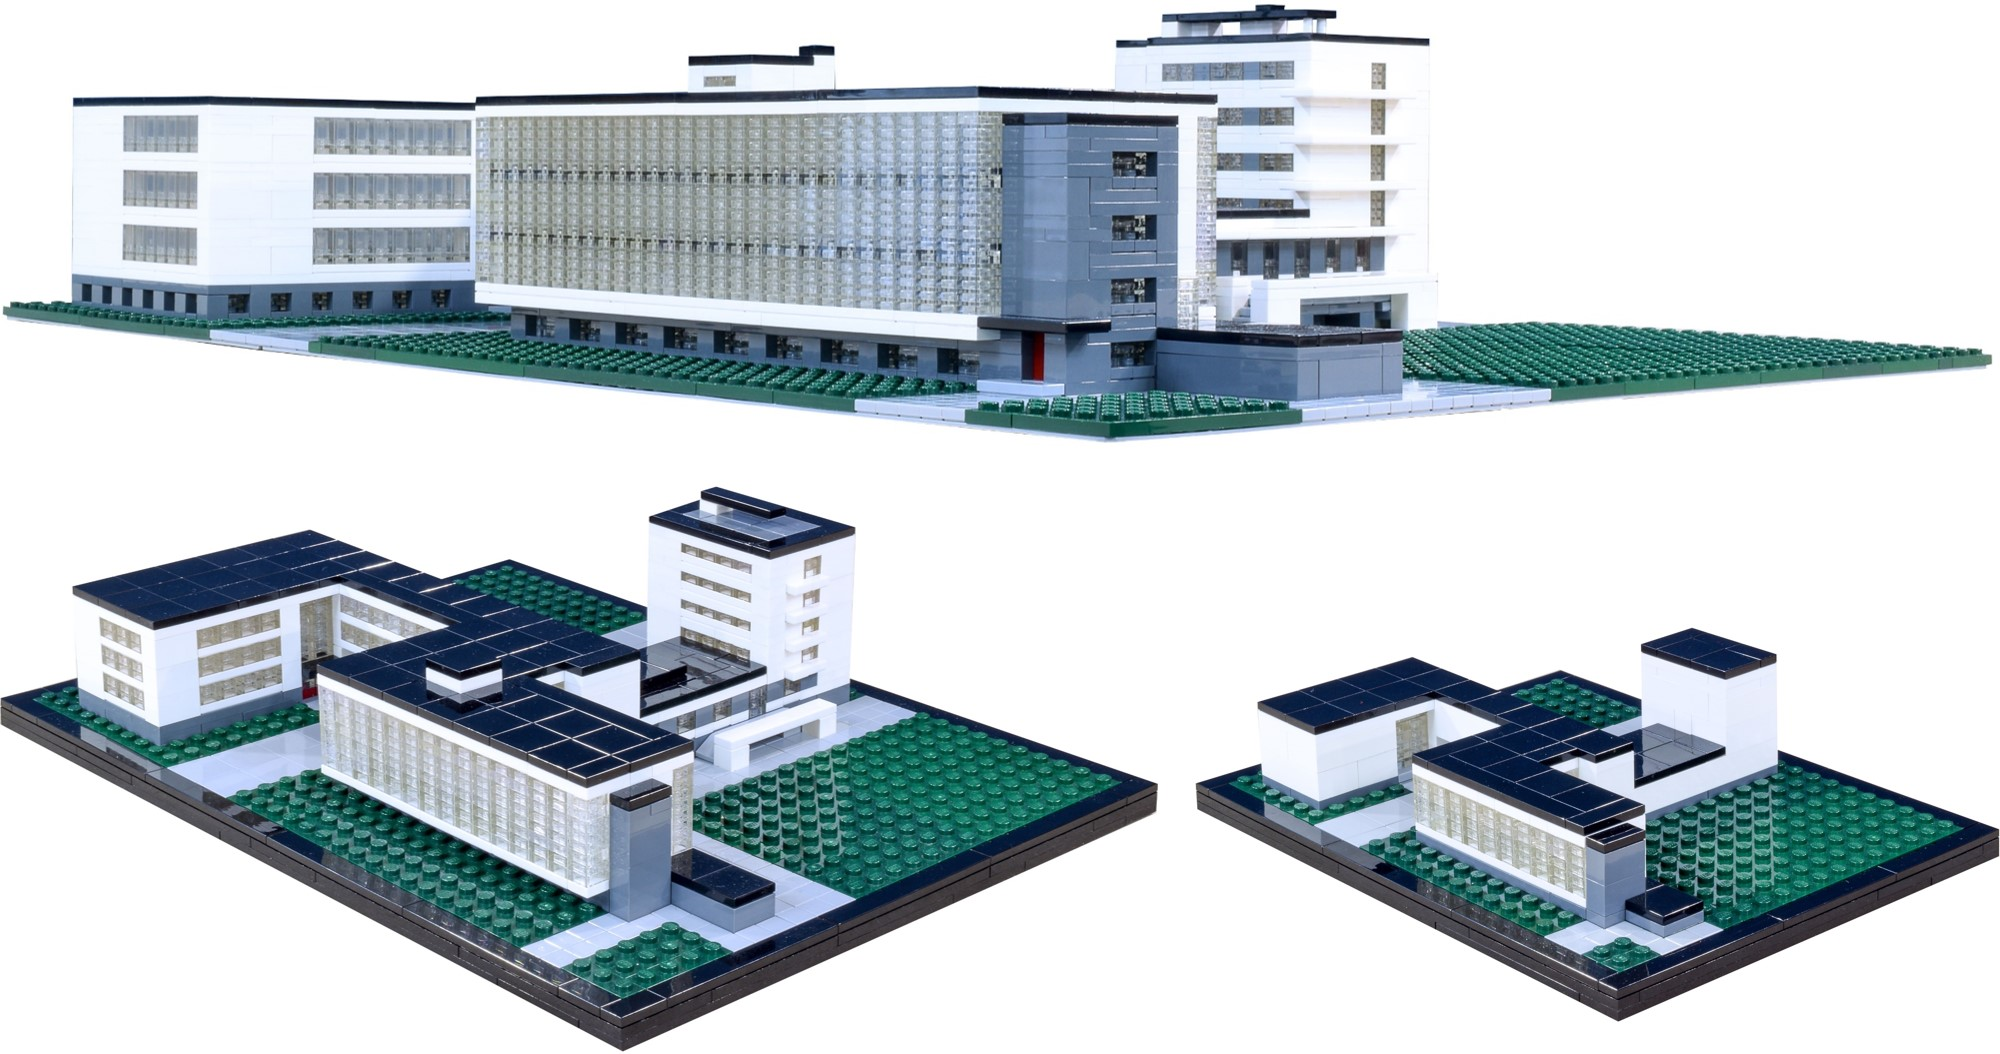 Bauhaus Architekt Bauhaus Dessau Brick Architect